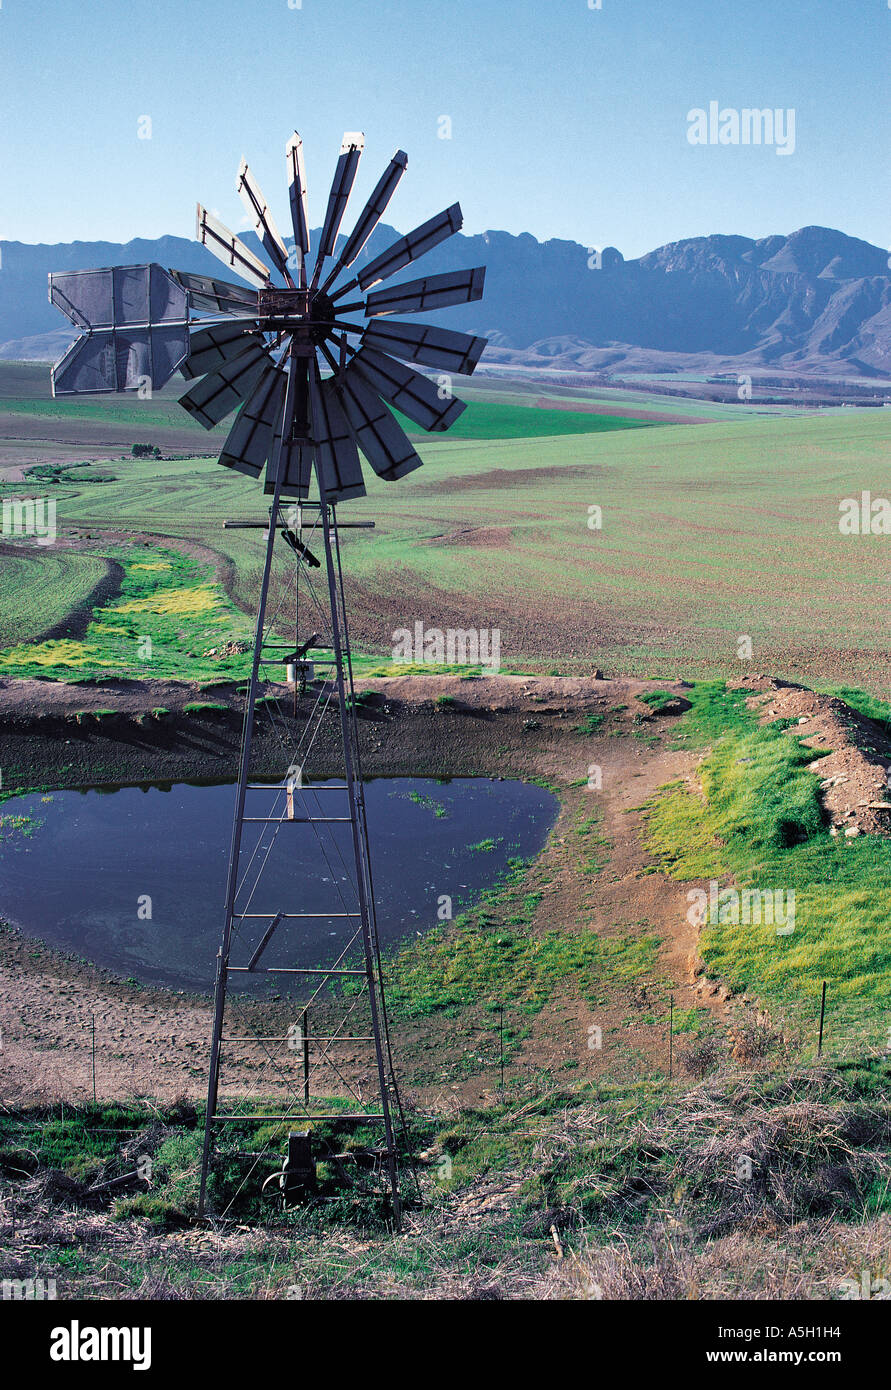 Windmill driven water pump filling a small dam in the hilly country of Langeberge Cape Province South Africa - Stock Image